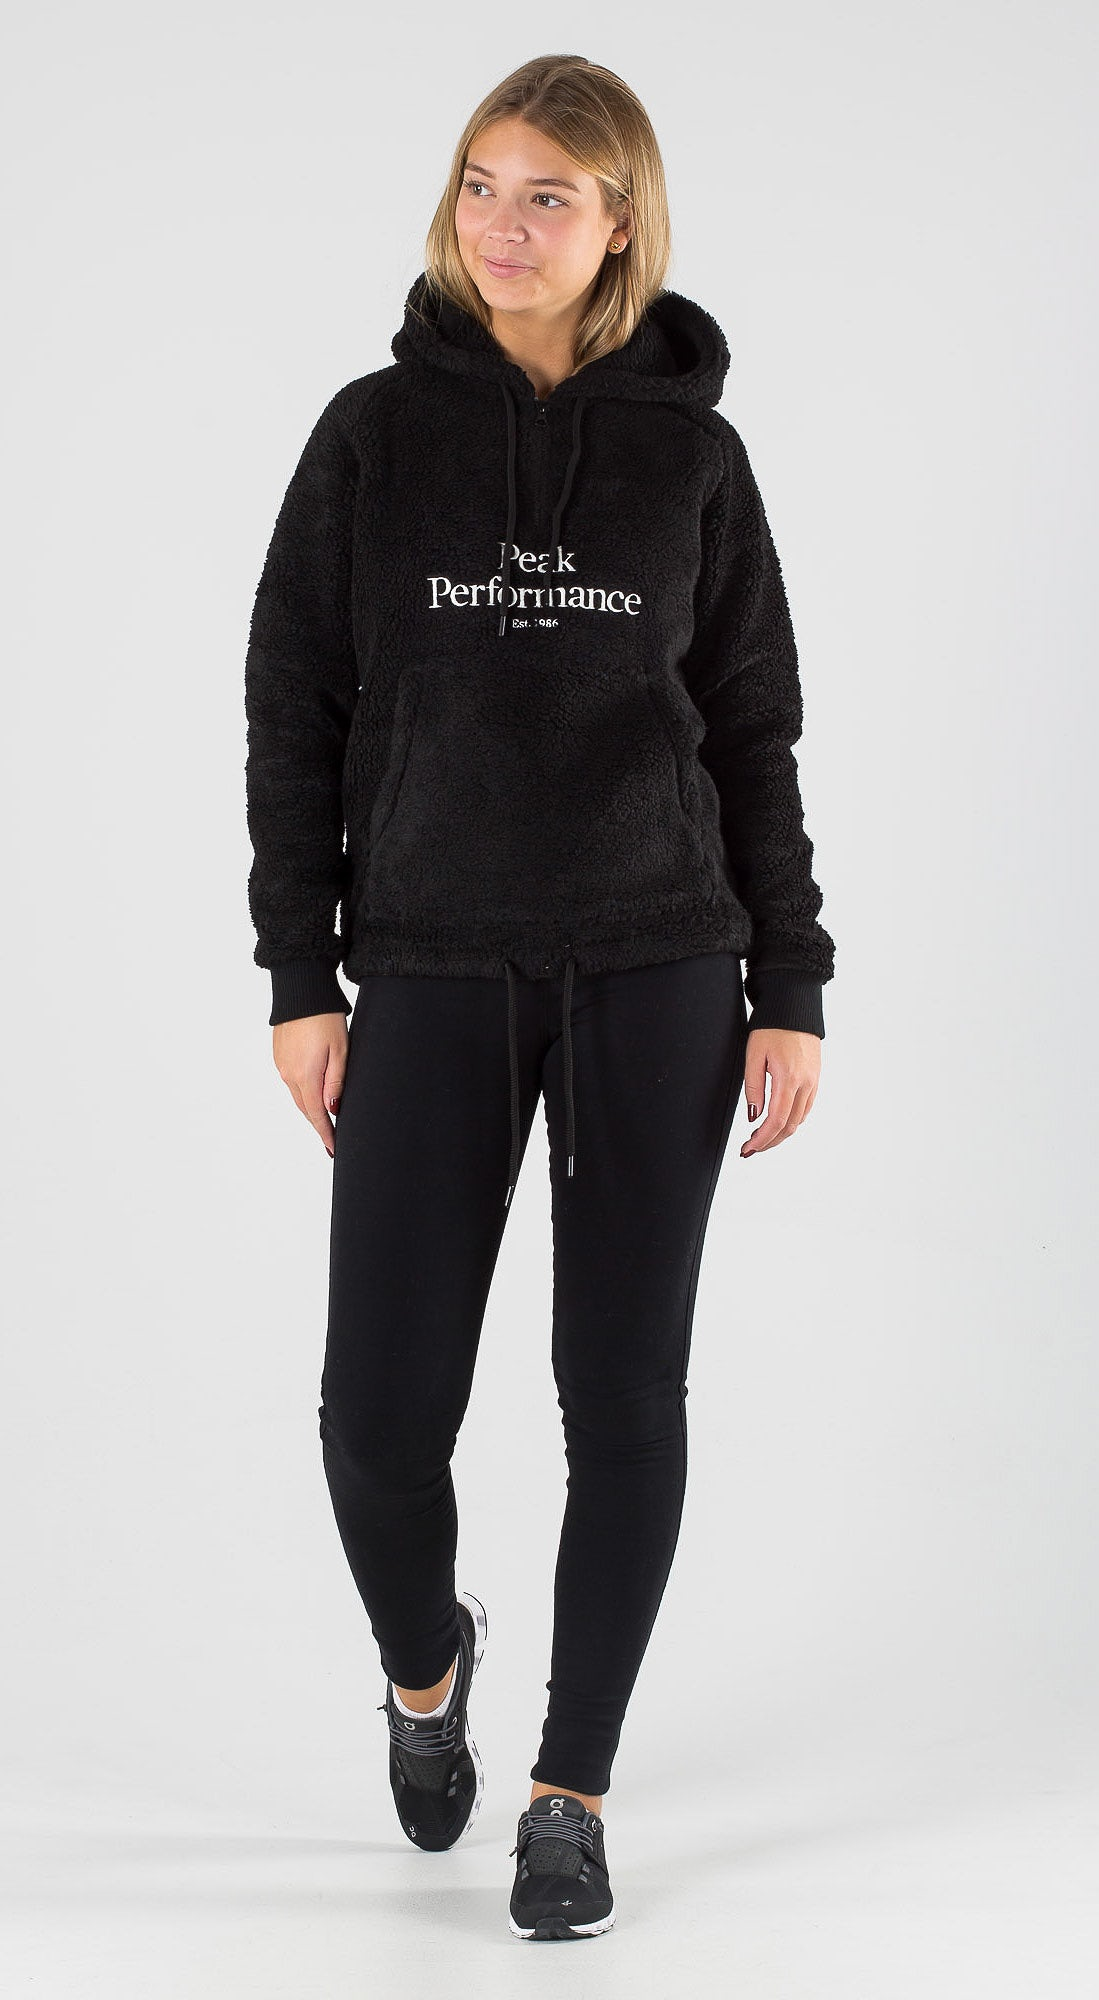 Peak Performance Original Pile Fleece